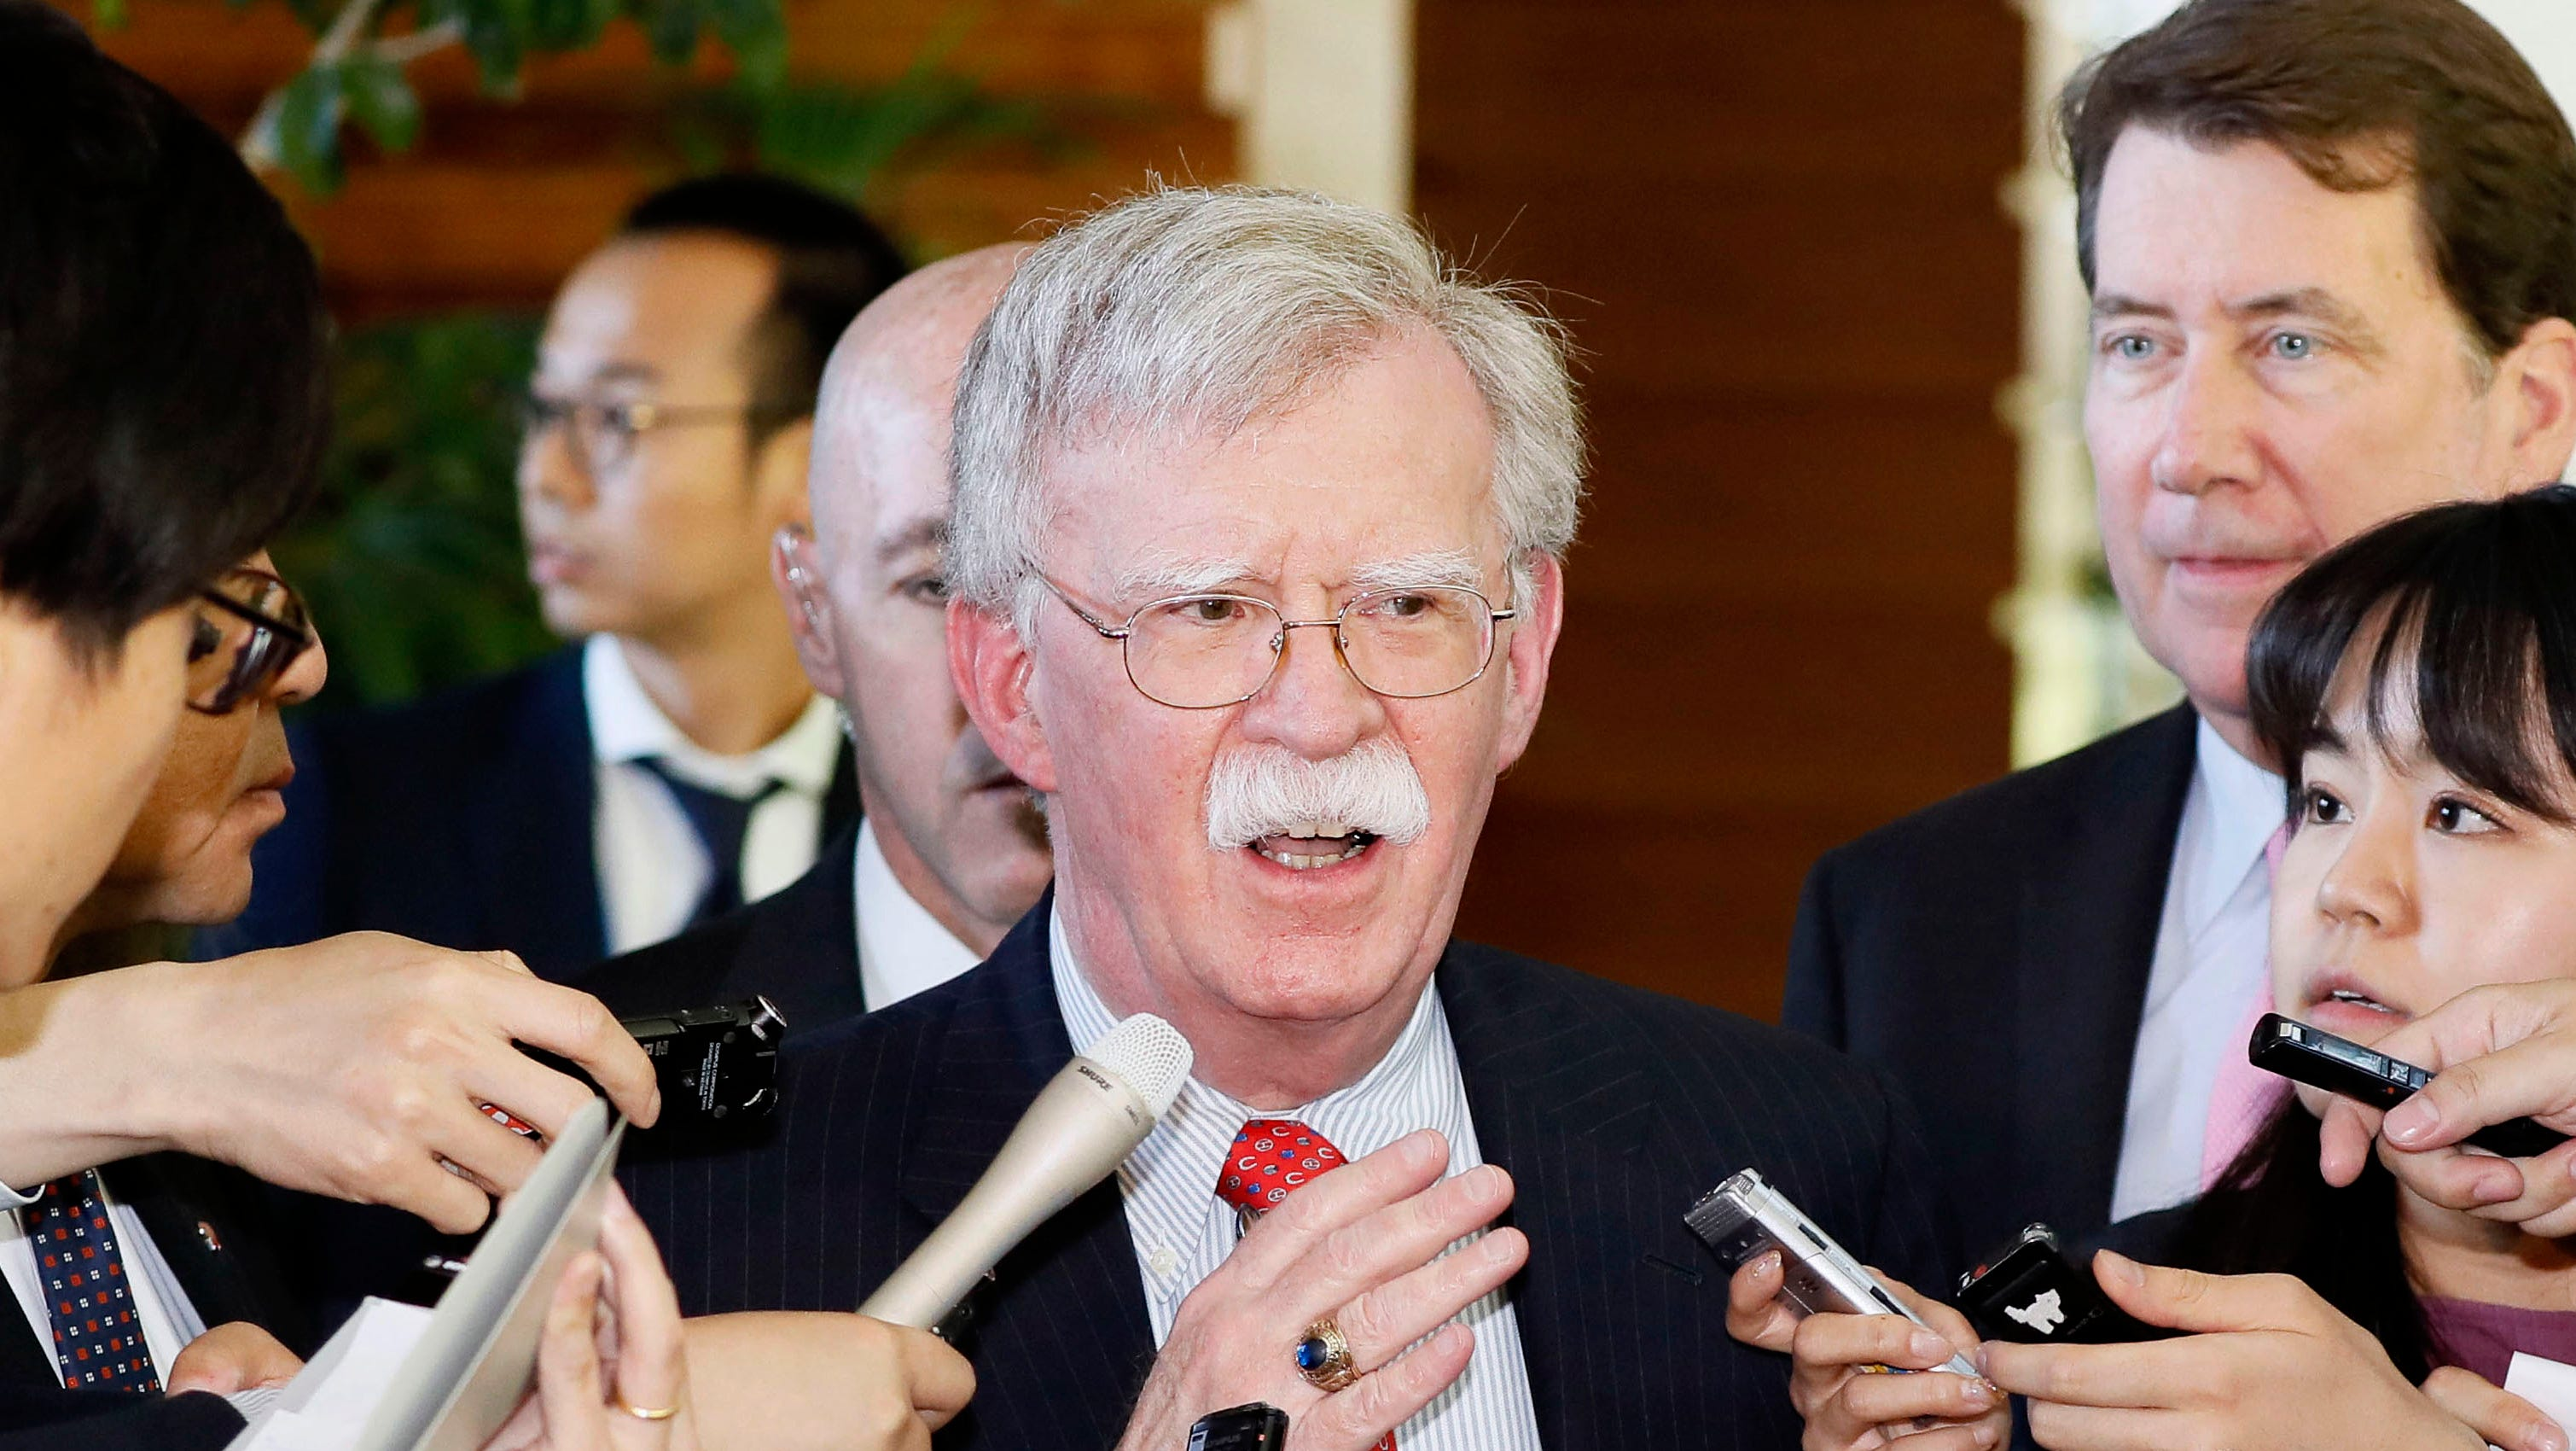 In this Friday, May 24, 2019, photo, U.S. National Security Adviser John Bolton is surrounded by reporters at the prime minister's official residence in Tokyo. Bolton called a series of short-range missiles launched by North Korea last month were violations to U.N. Security Council resolutions, stressing the need to keep sanctions in place. Bolton said Saturday, May 25, 2019, in Tokyo the U.S. position on the North's denuclearization is consistent and that a repeated pattern of failures should be stopped.